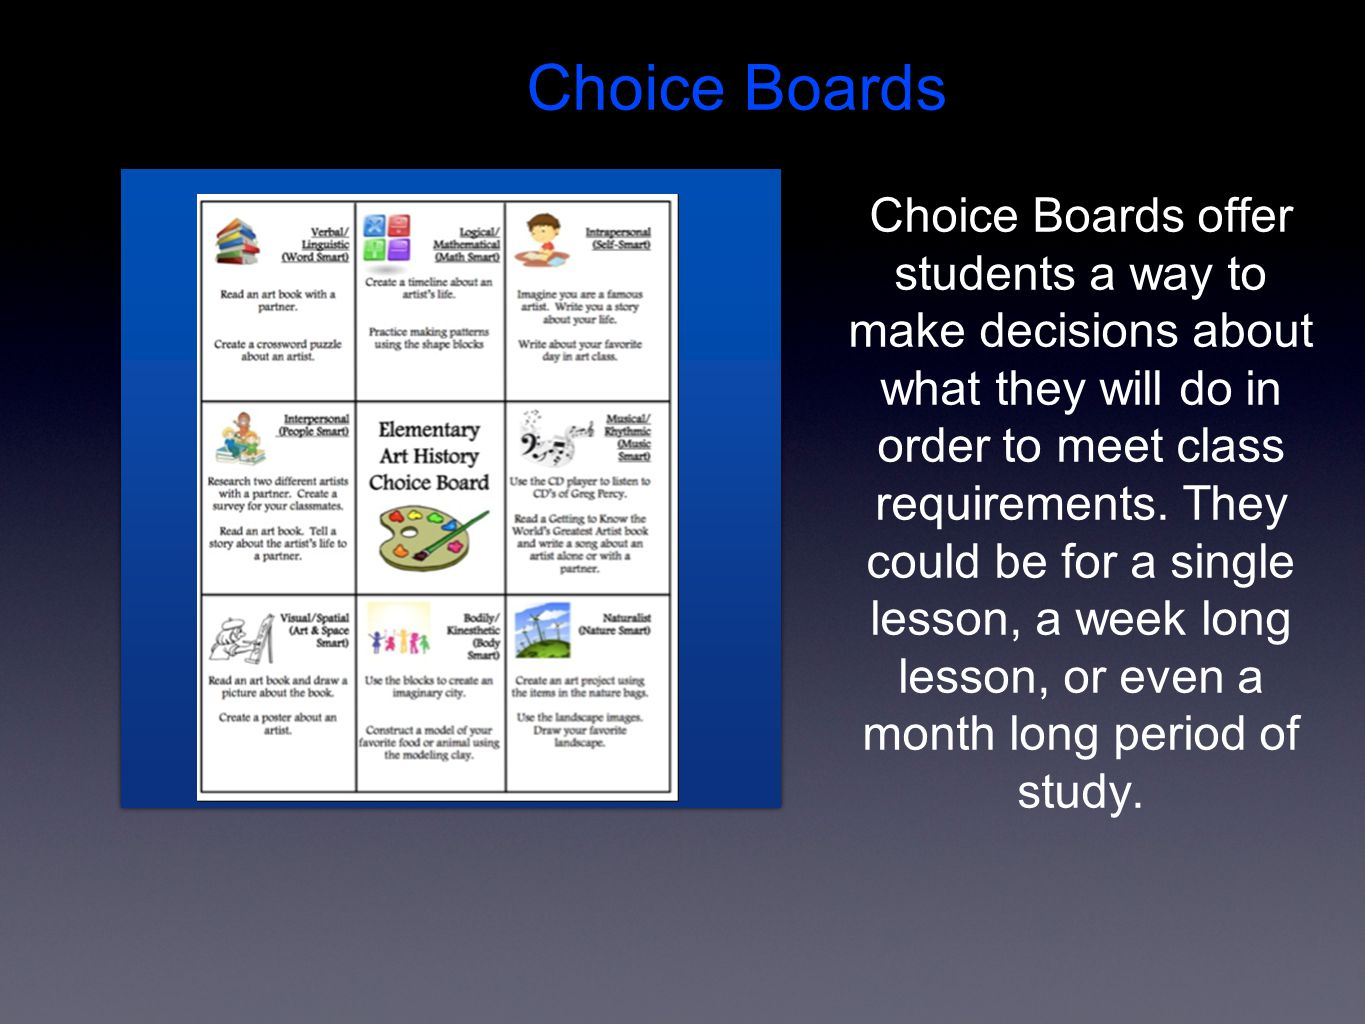 Choice Boards offer students a way to make decisions about what they will do in order to meet class requirements.